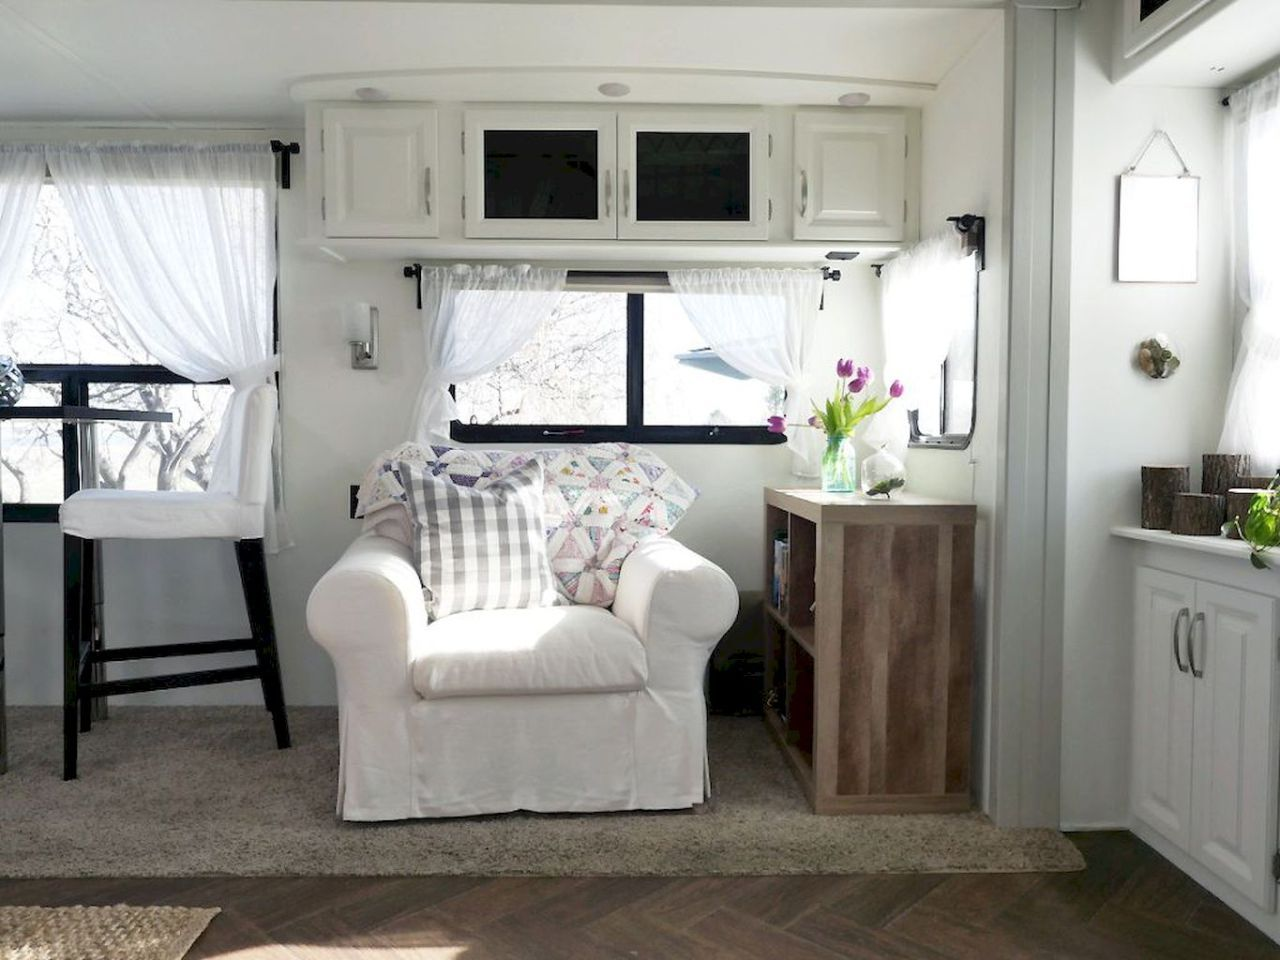 90 modern rv remodel travel trailers ideas 56 with